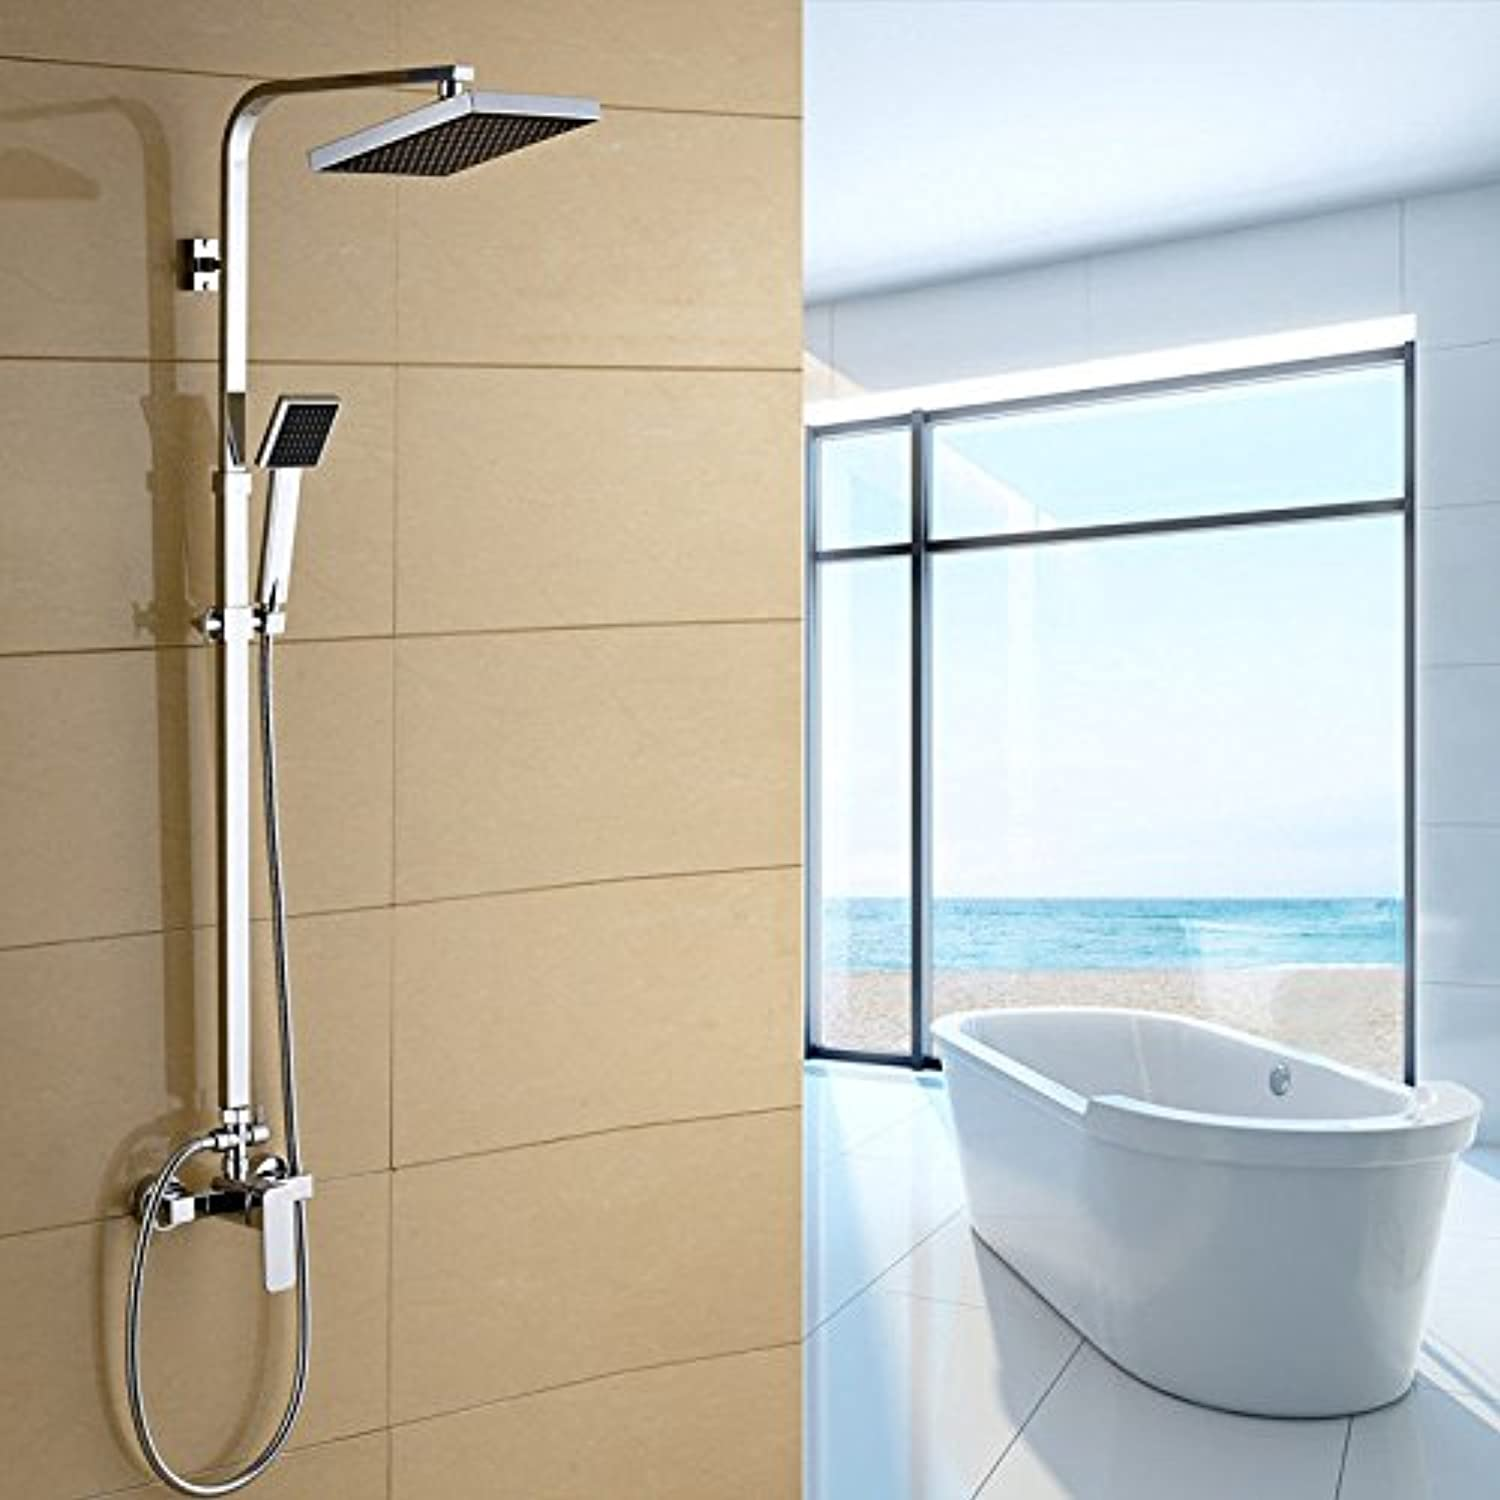 Bijjaladeva Antique Bathroom Sink Vessel Faucet Basin Mixer Tap Shower Faucet Kit Full brass waterfall faucet shower bathroom rain shower faucets sprinkler kit A